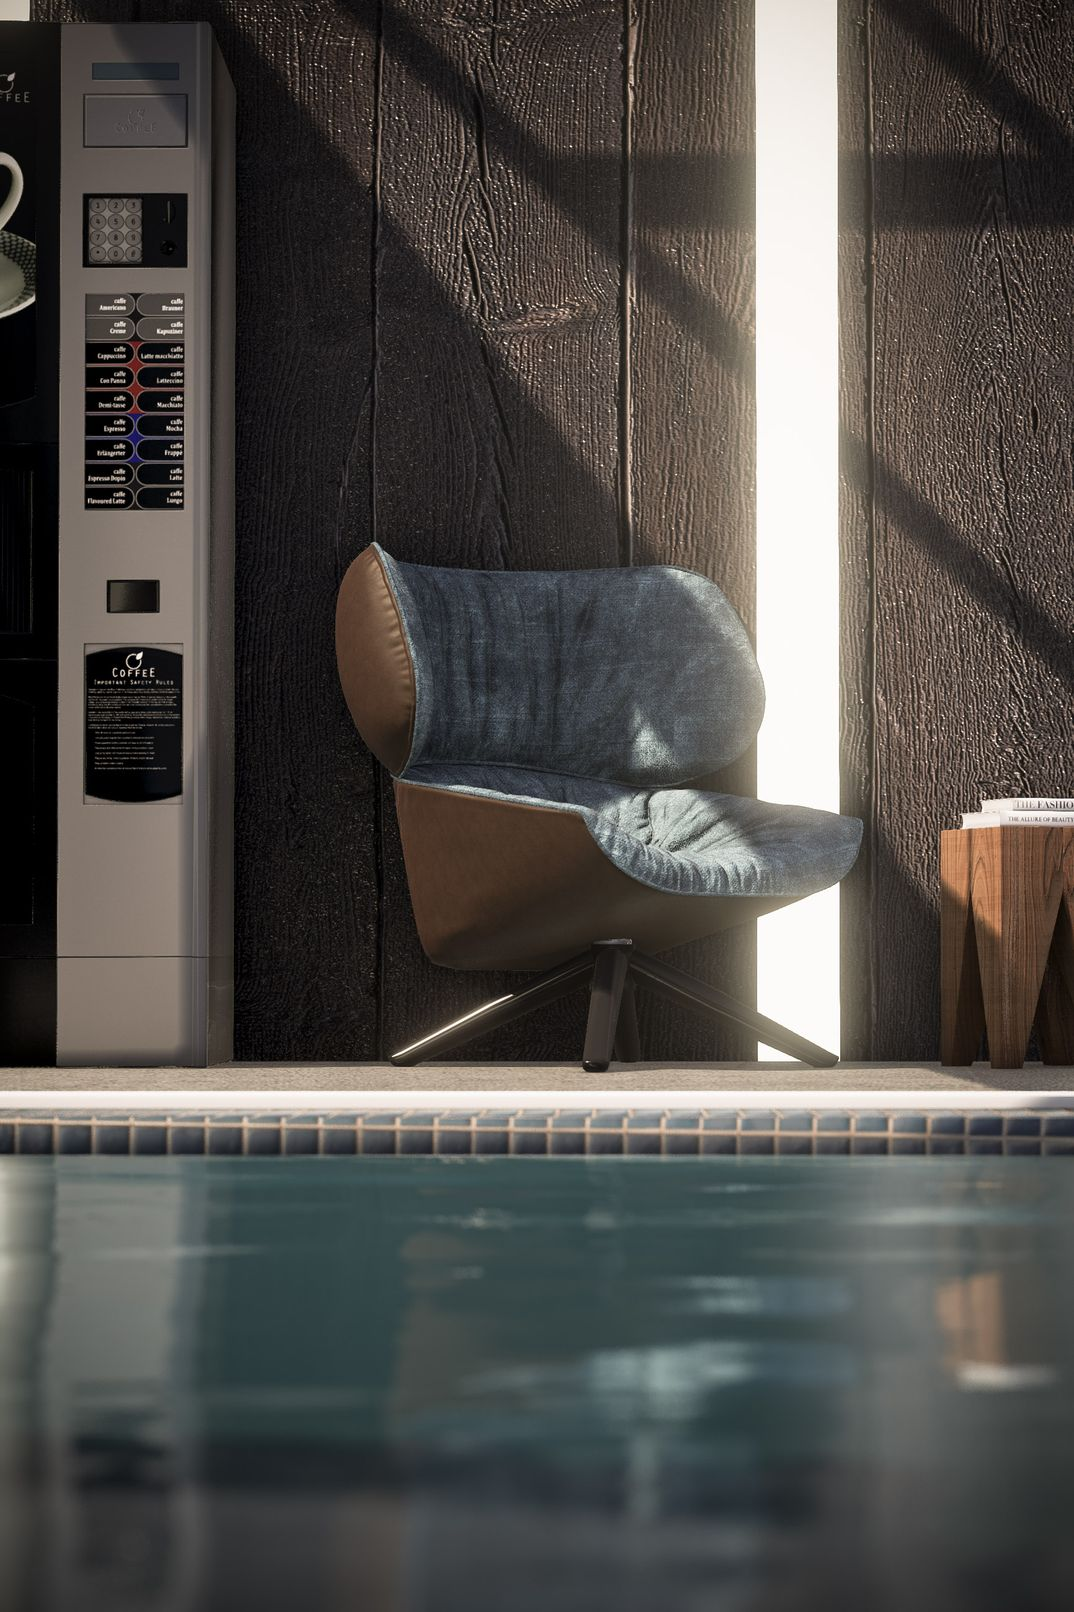 ARCHVIZ POOL UNREAL ENGINE 4.14